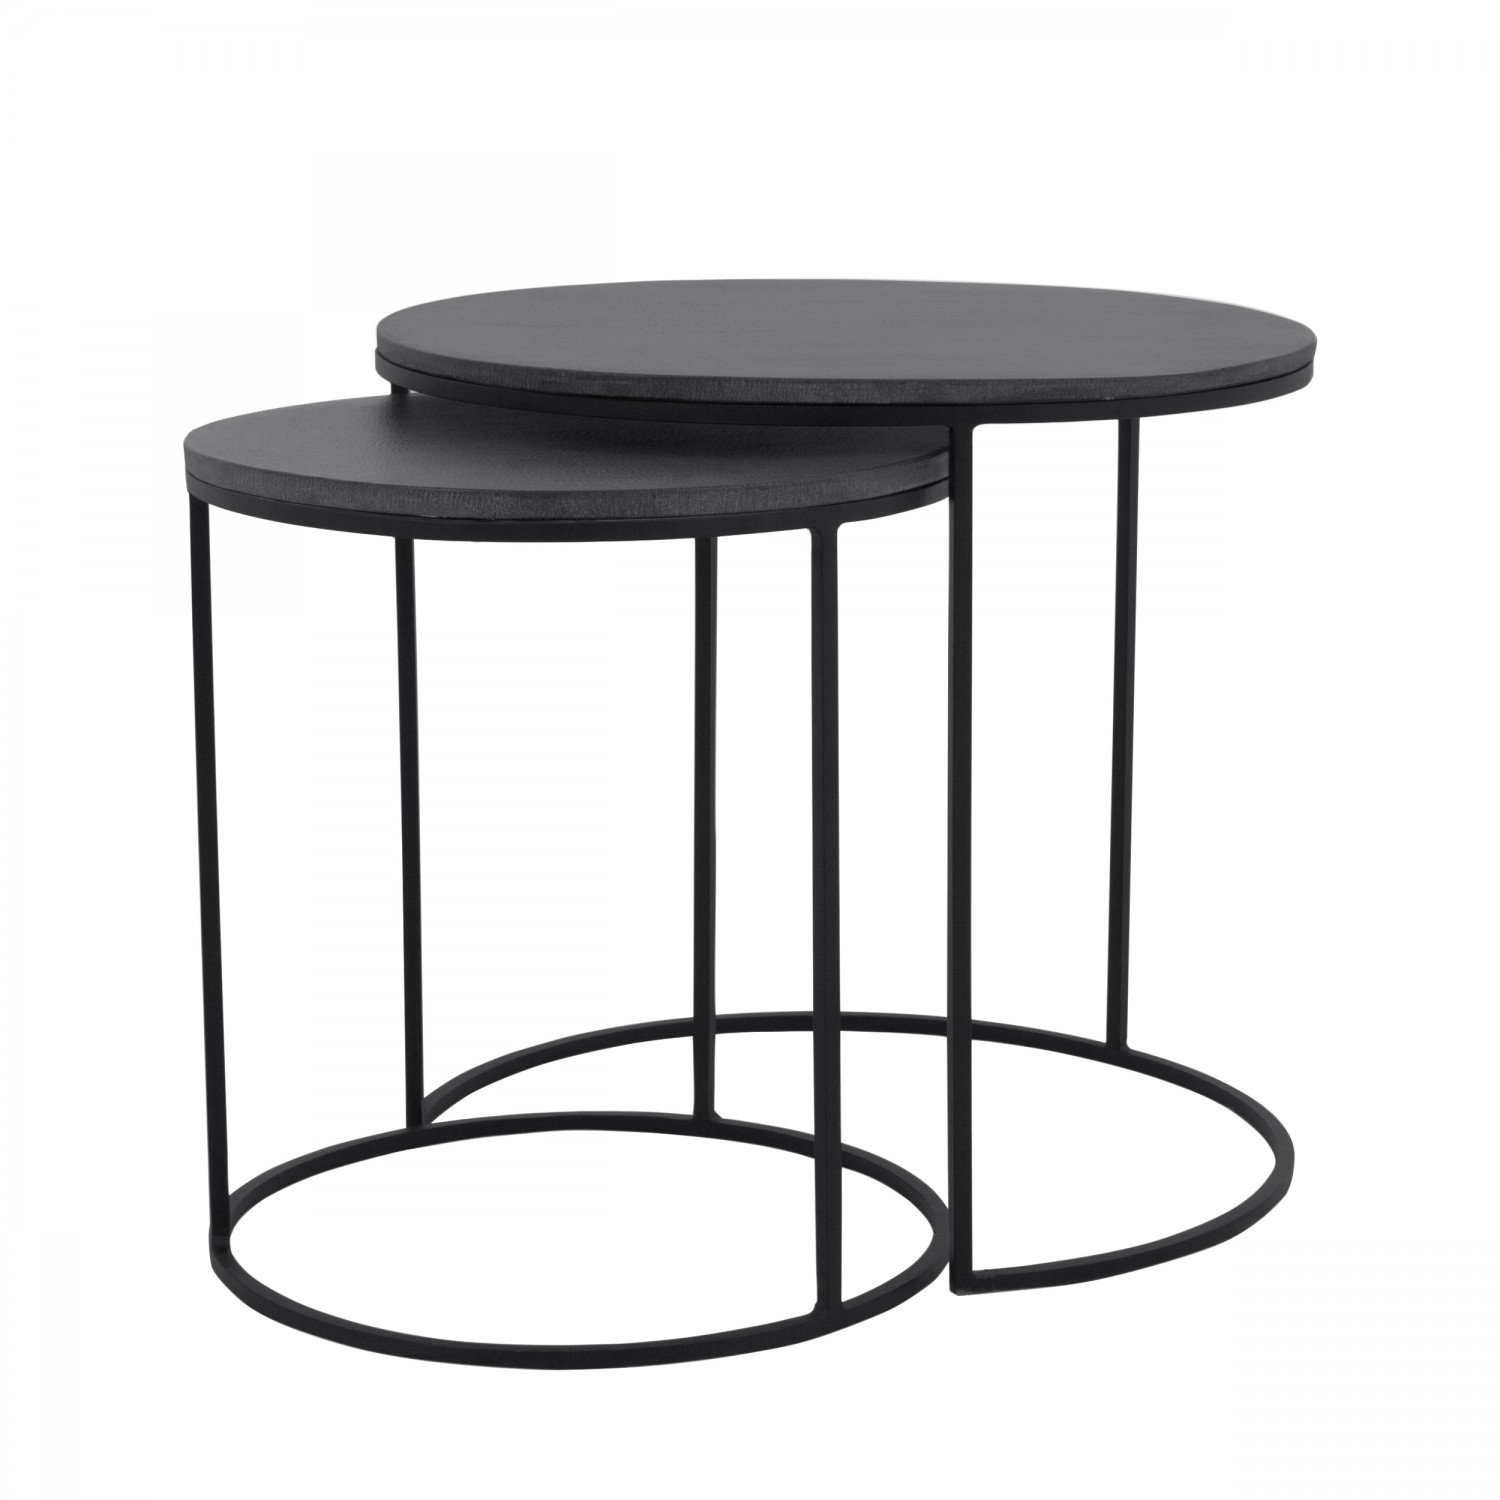 Table basse gigogne ronde batur lavastone lot de 2 koya design - Table basse salon noir ...